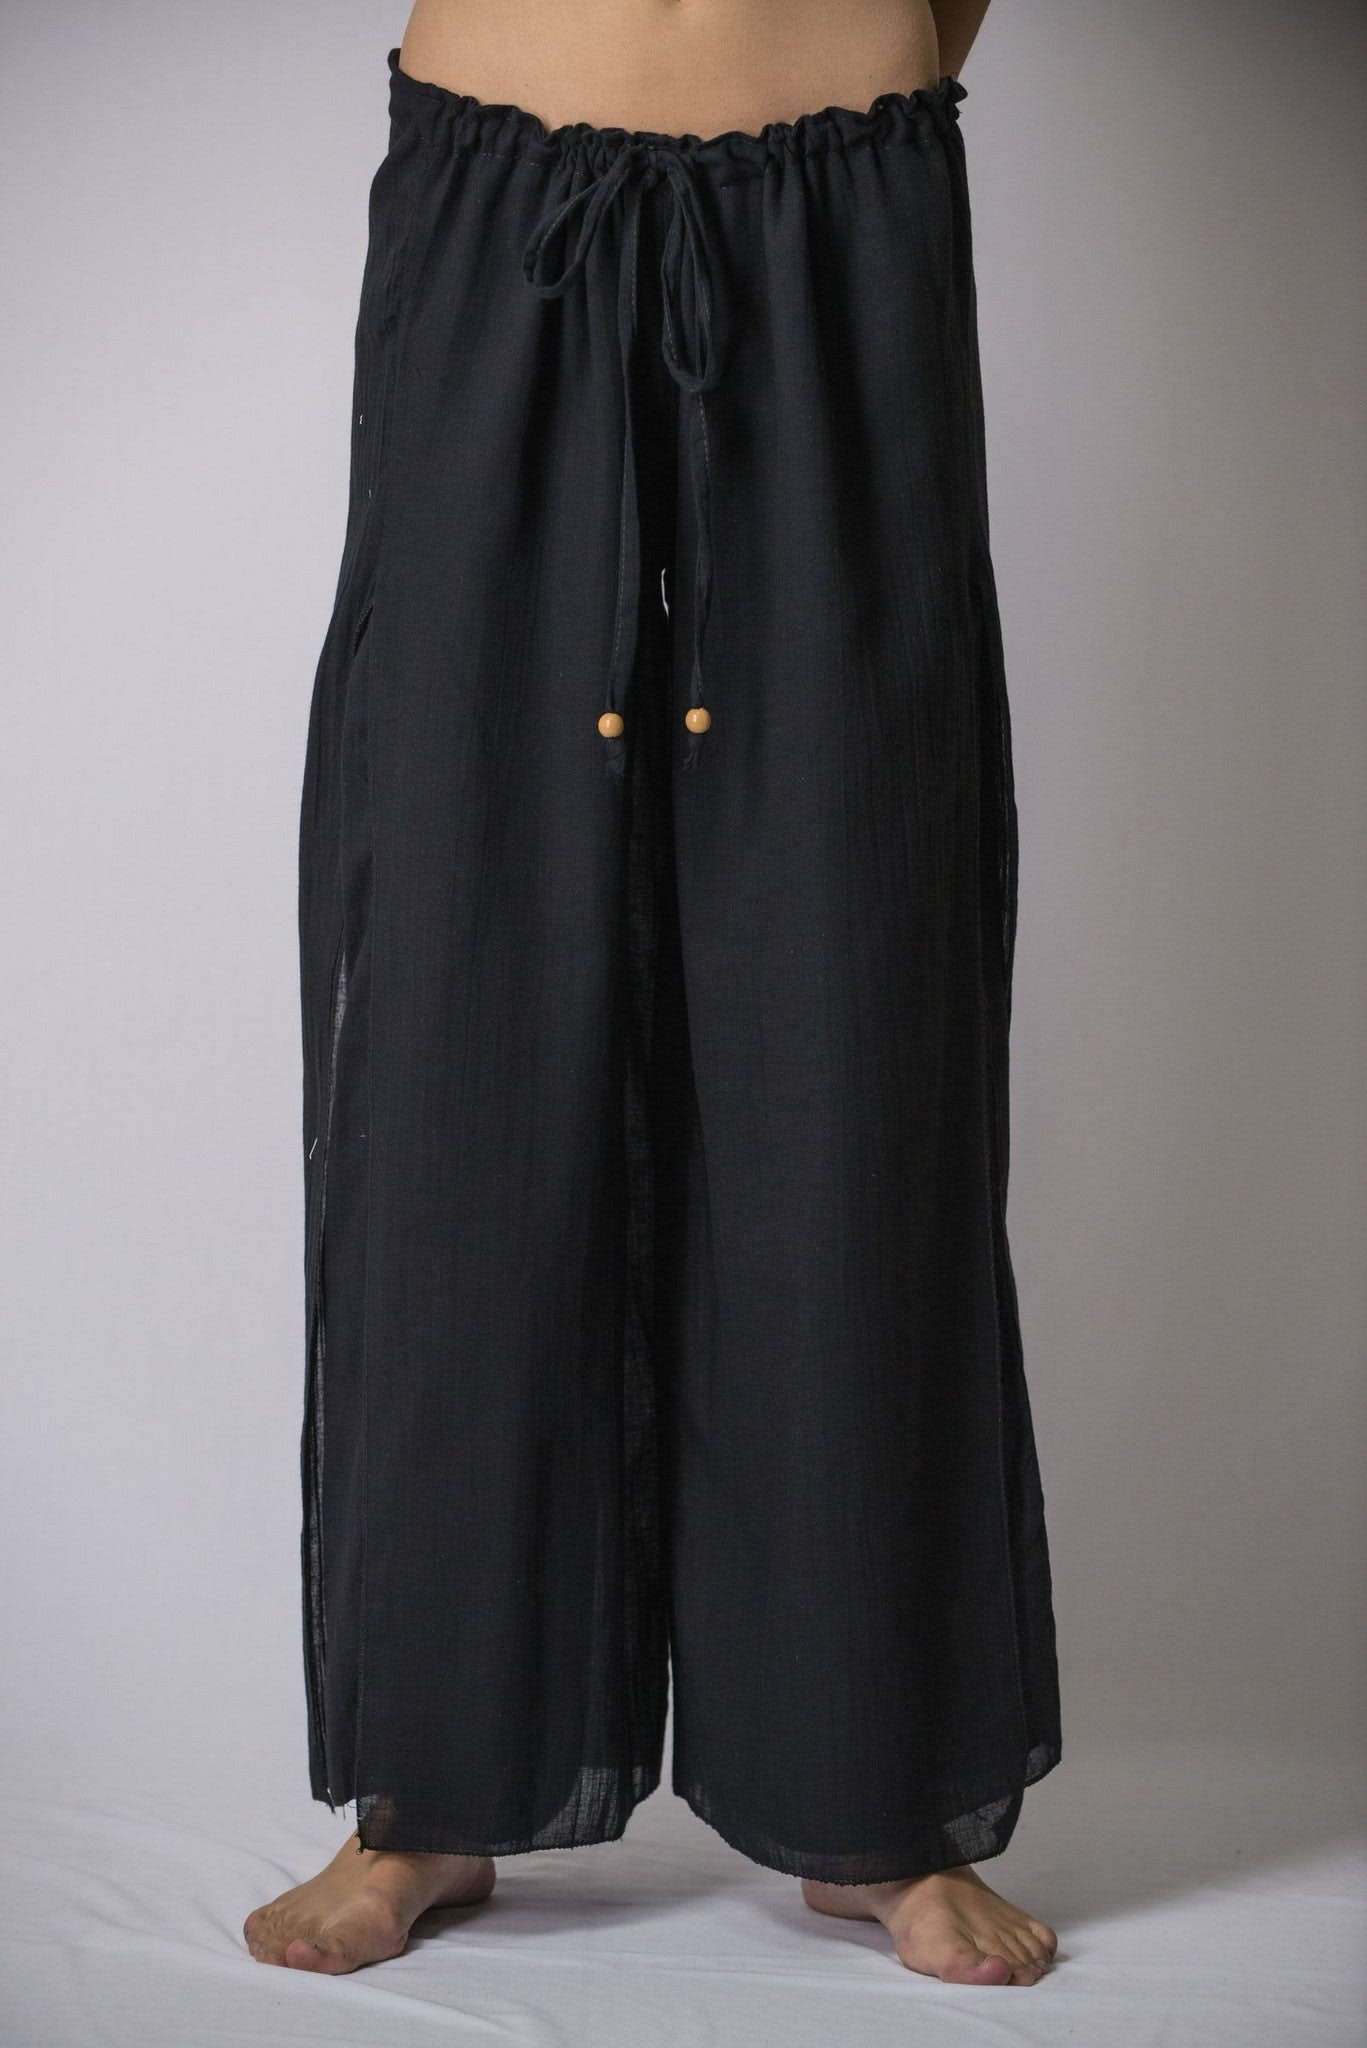 Luxury Womenu0026#39;s Thai Harem Double Layers Palazzo Pants In Solid Black U2013 Harem Pants